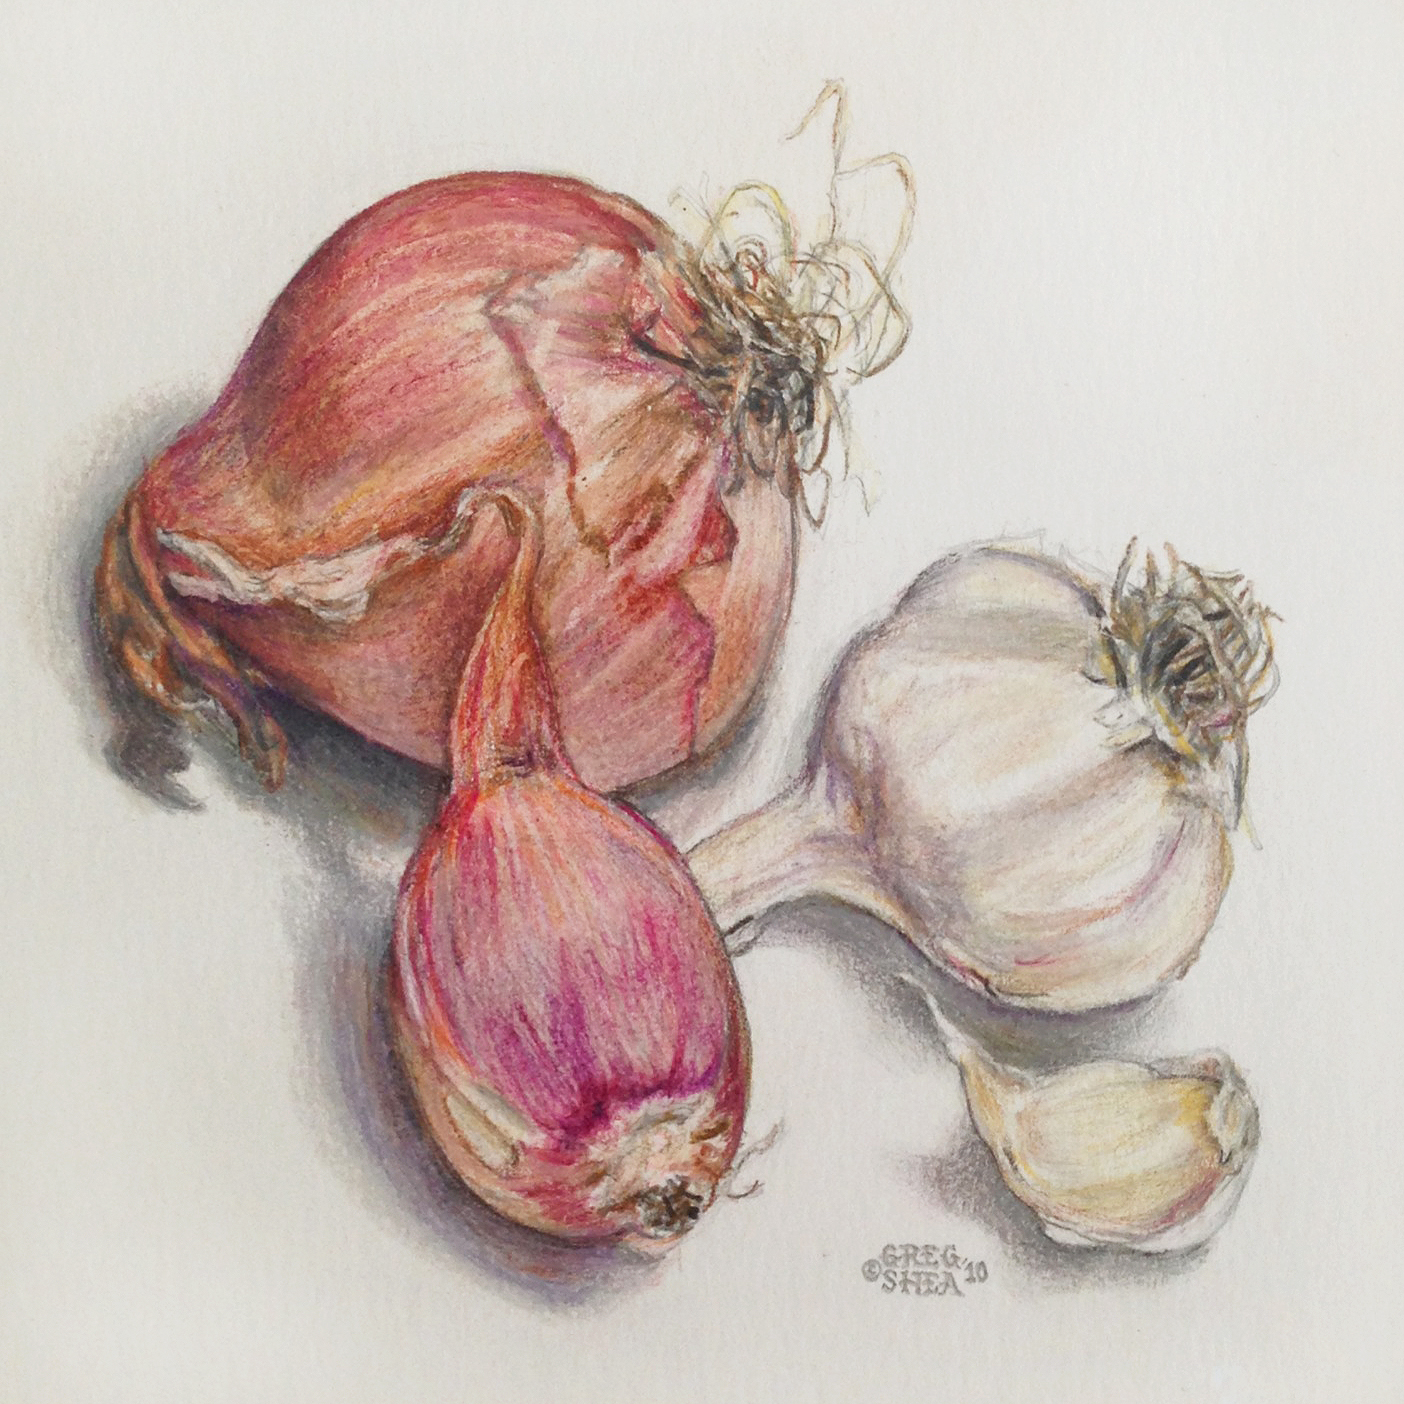 Shallots and Garlic  , 2010. Colored pencil on paper. Private collection.